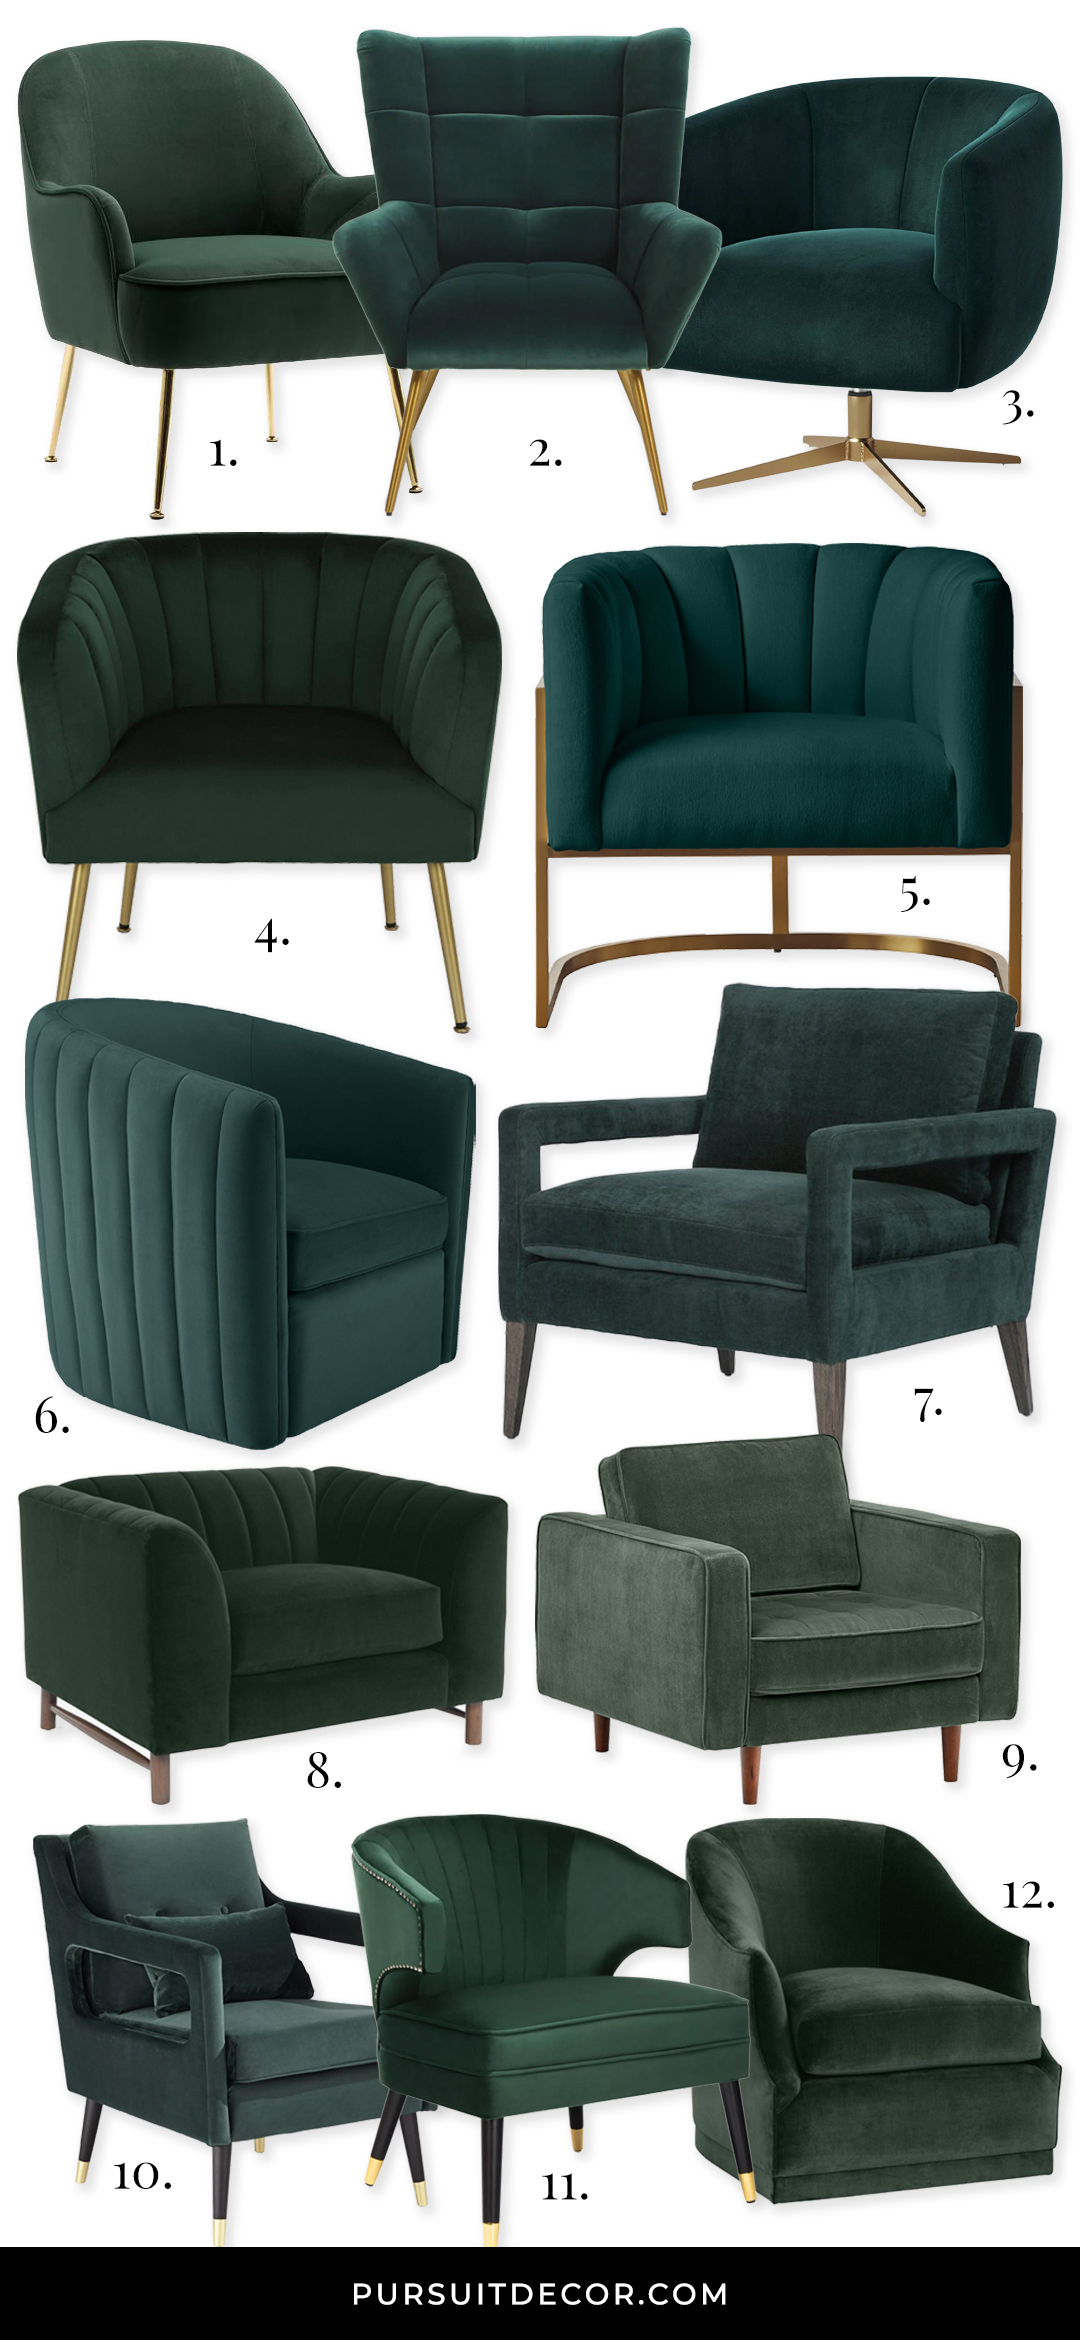 12 Gorgeous Hunter Green Accent Chair Options - feat. chairs from Wayfair, Target, Amazon, One Kings Lane and ZGallerie. #huntergreen #greenaccentchair #huntergreenchair